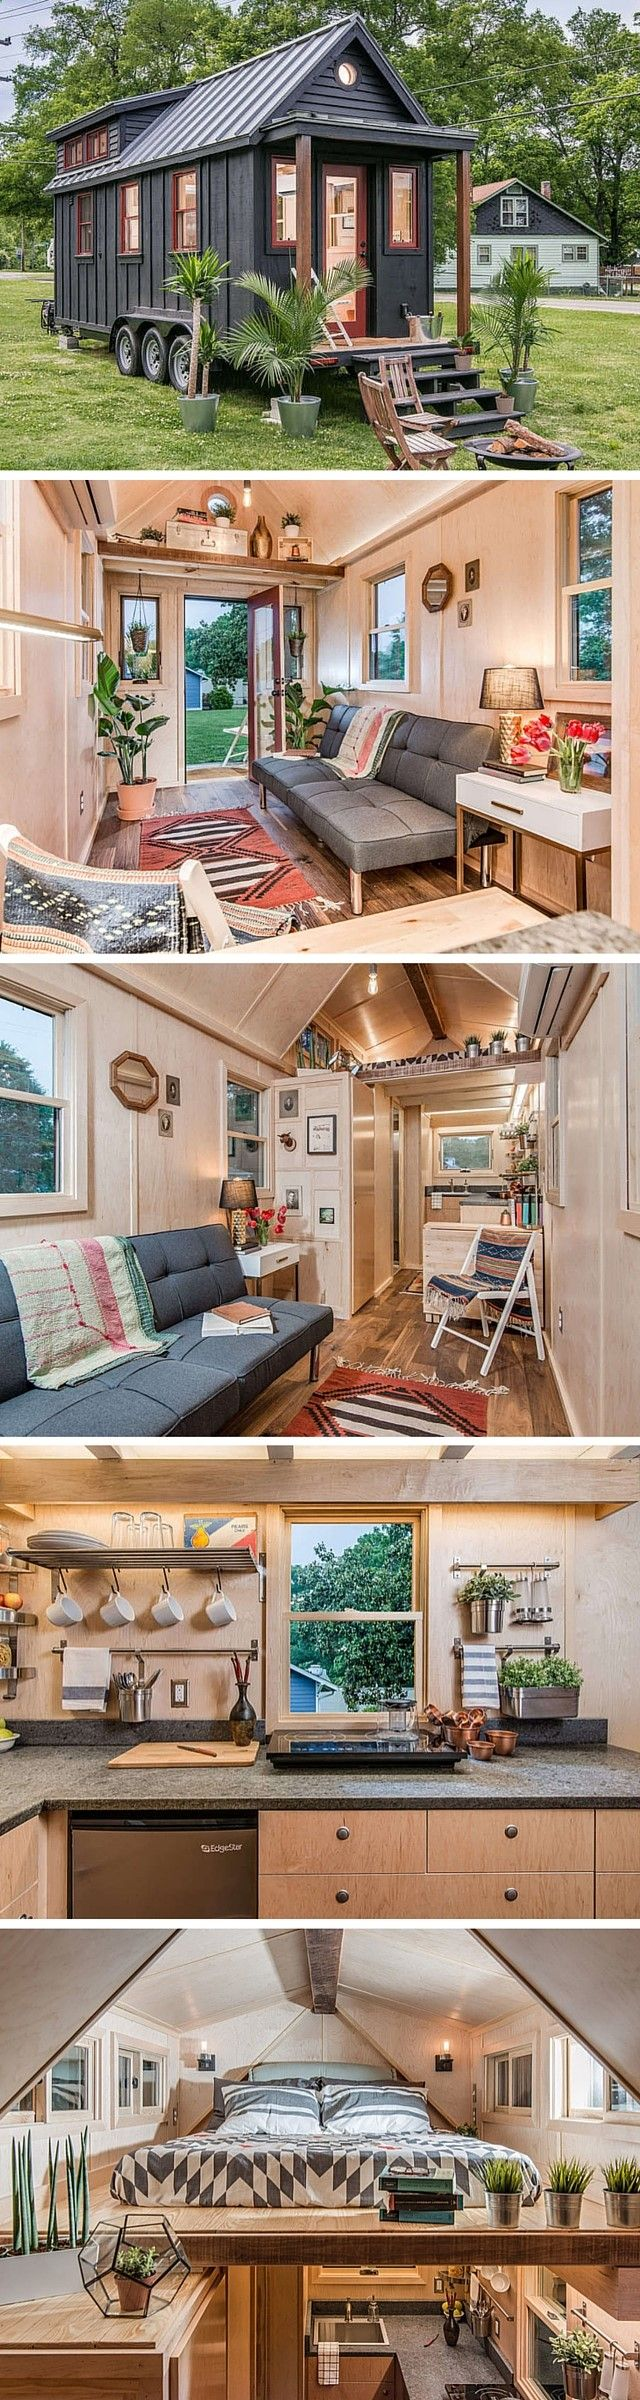 Shed Plans - The Riverside tiny house by New Frontier Tiny Homes. A 246 sq ft home with Scandinavian flair. - Now You Can Build ANY Shed In A Weekend Even If You've Zero Woodworking Experience!